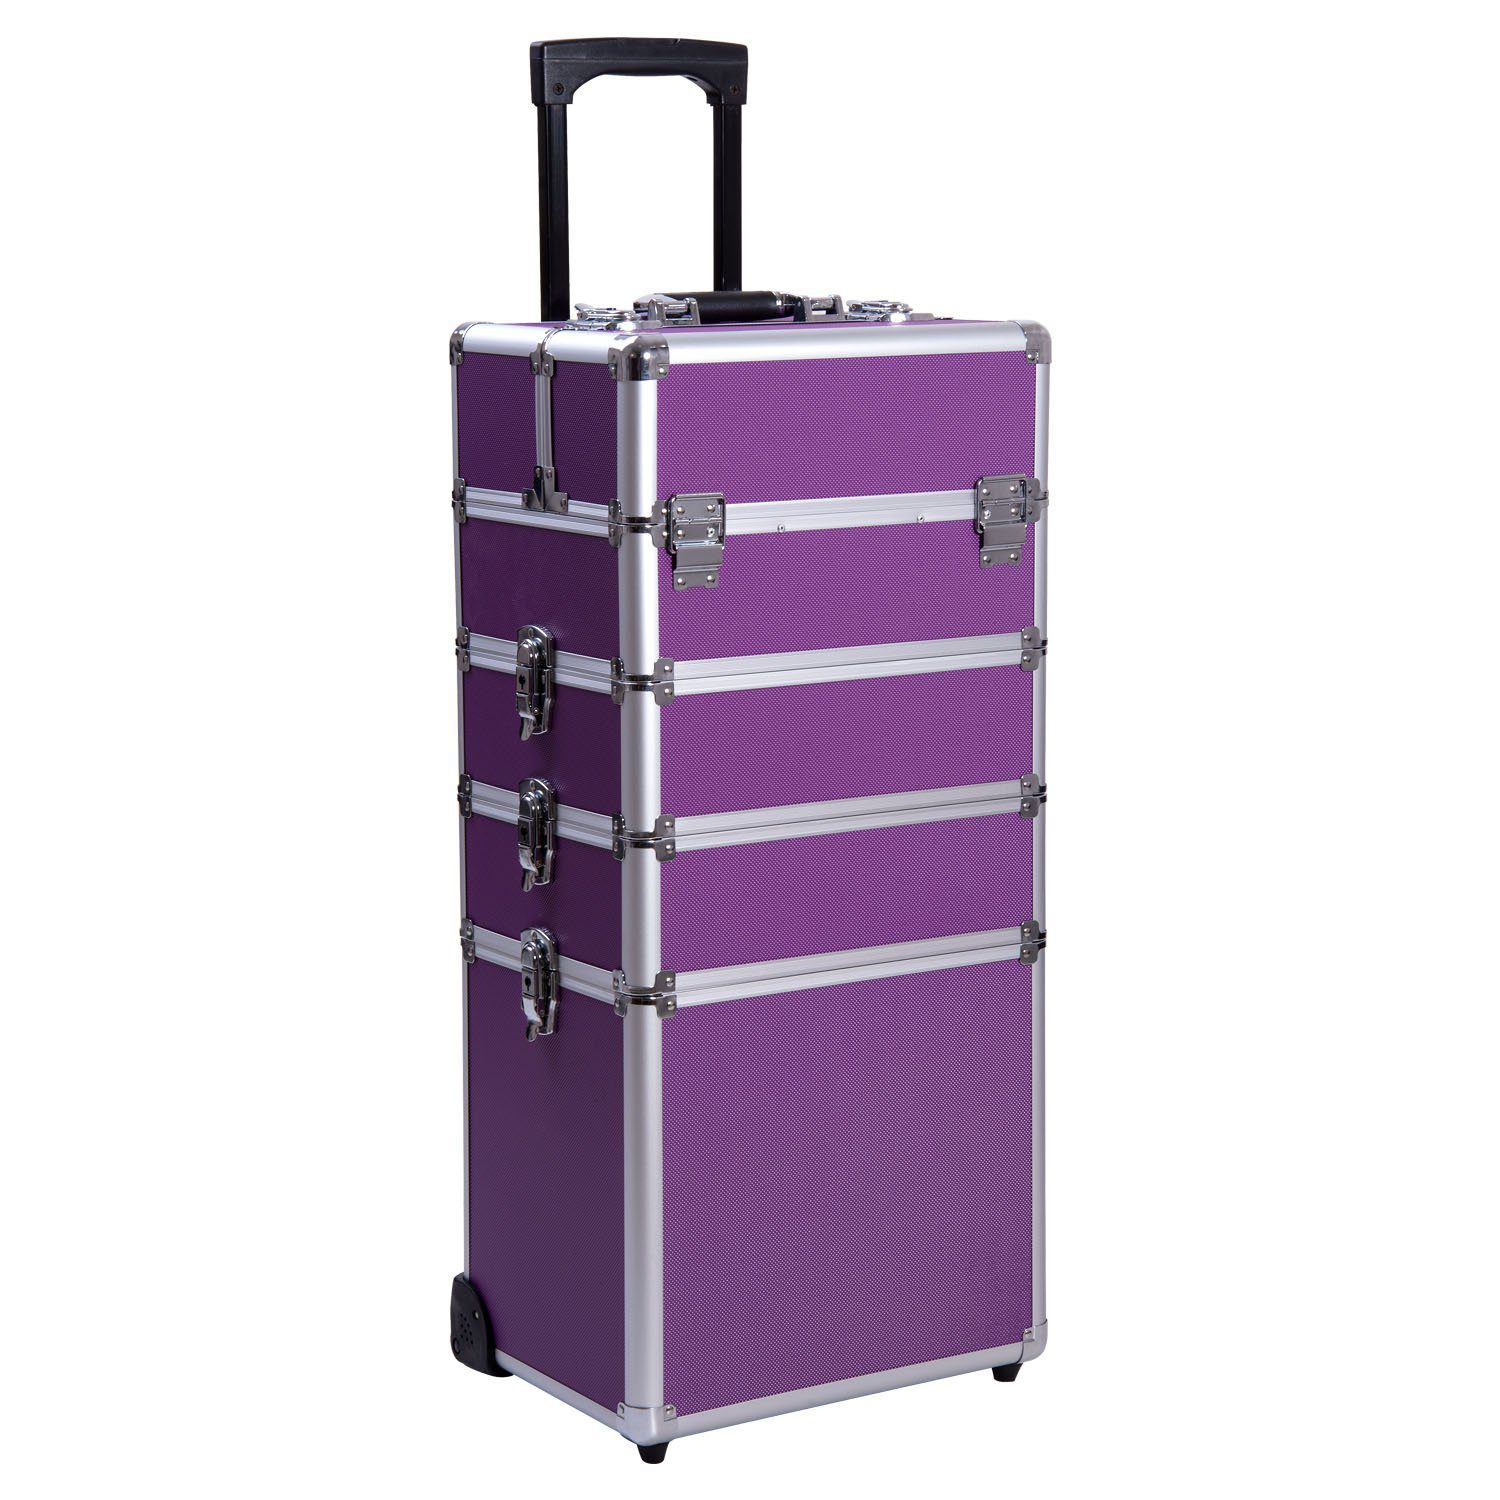 Ollieroo 4 in 1 Aluminum Rolling Cosmetic Makeup Train Cases Trolley Professional Artist Train Case Organizer Box Lift Handle Lock 2 wheel 2 Keys Each Layer Total 8 Keys Purple